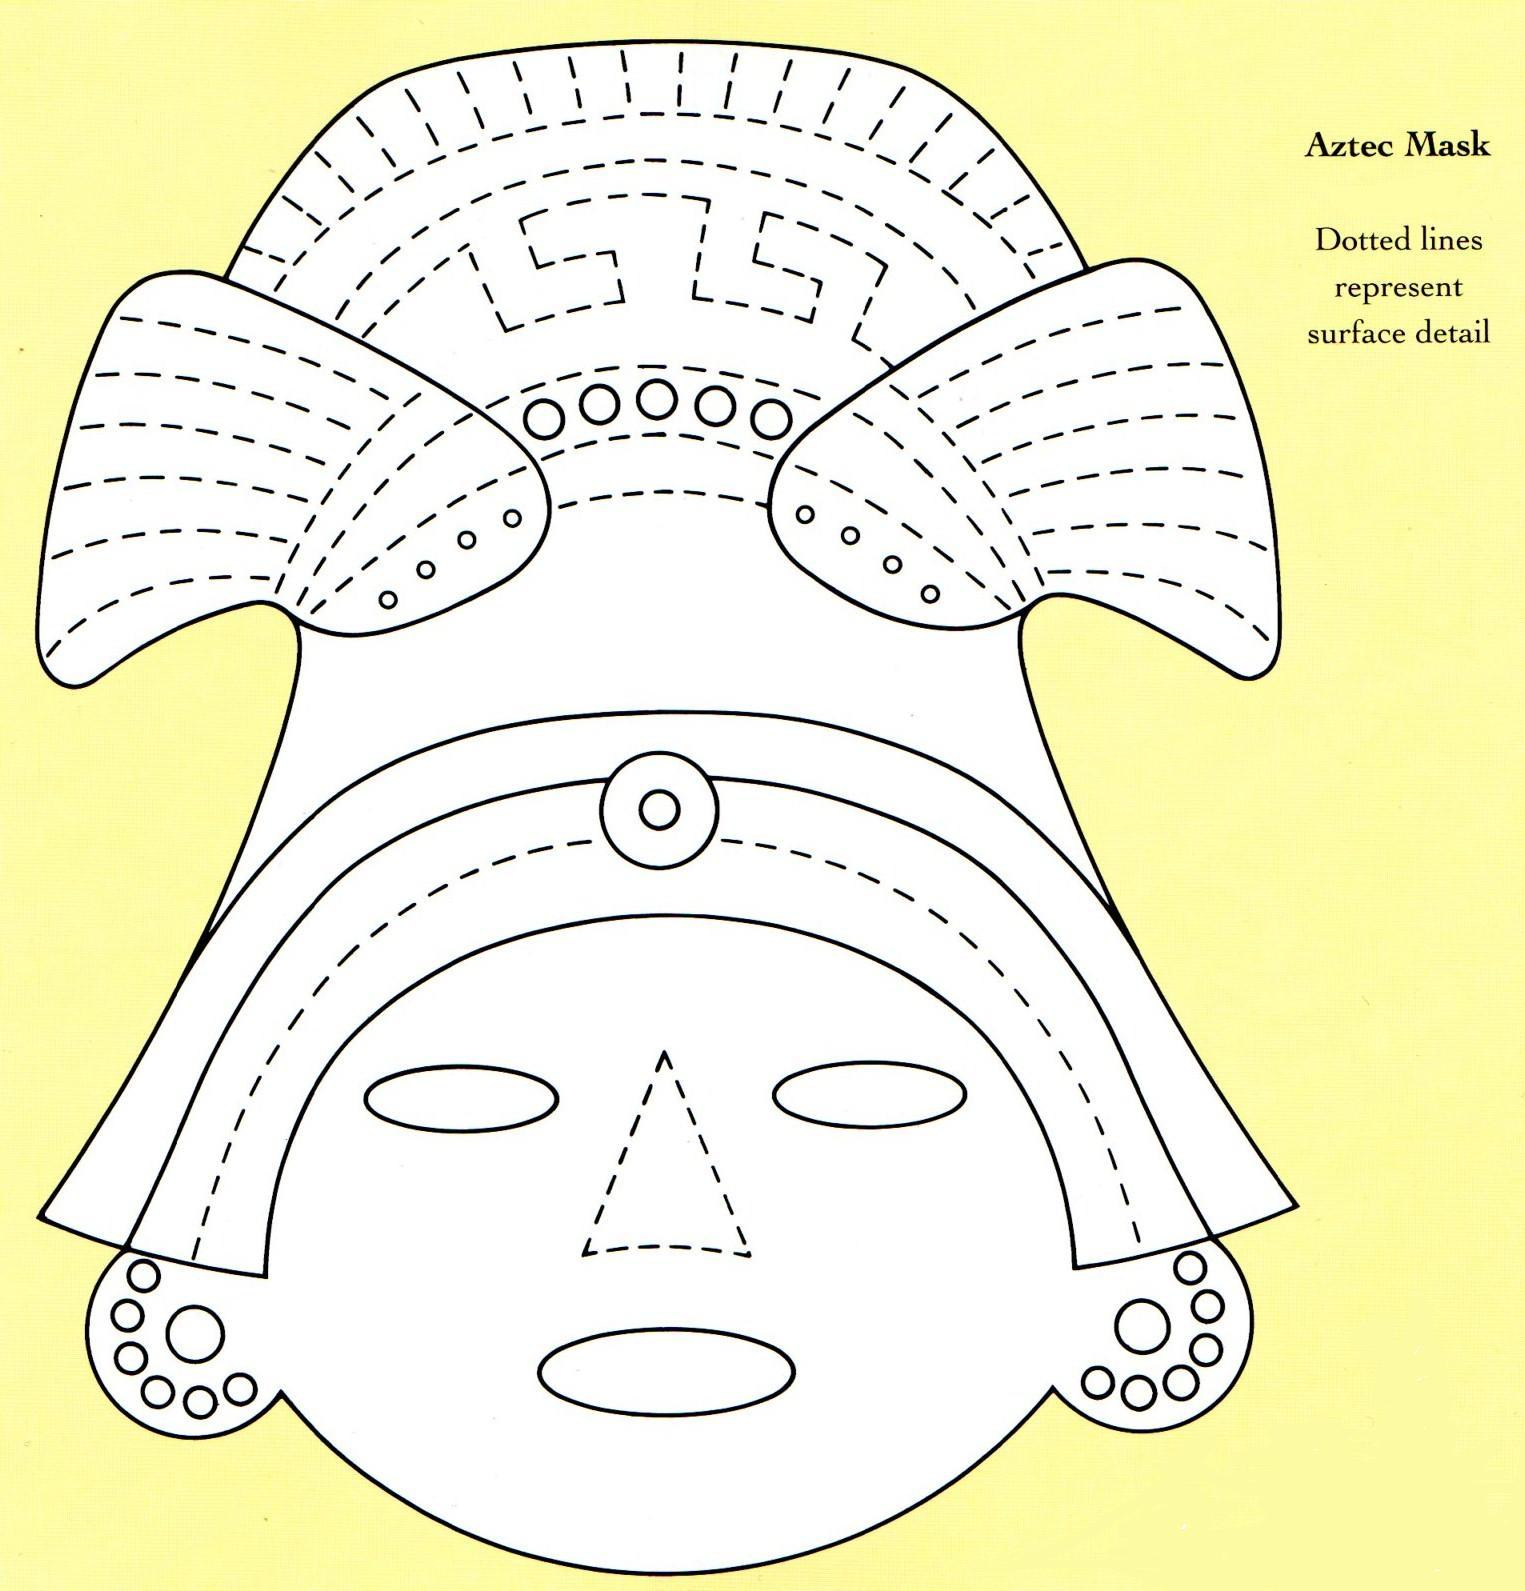 Bread Dough Aztec Mask | Country & Victorian Times throughout Aztec Mask Template